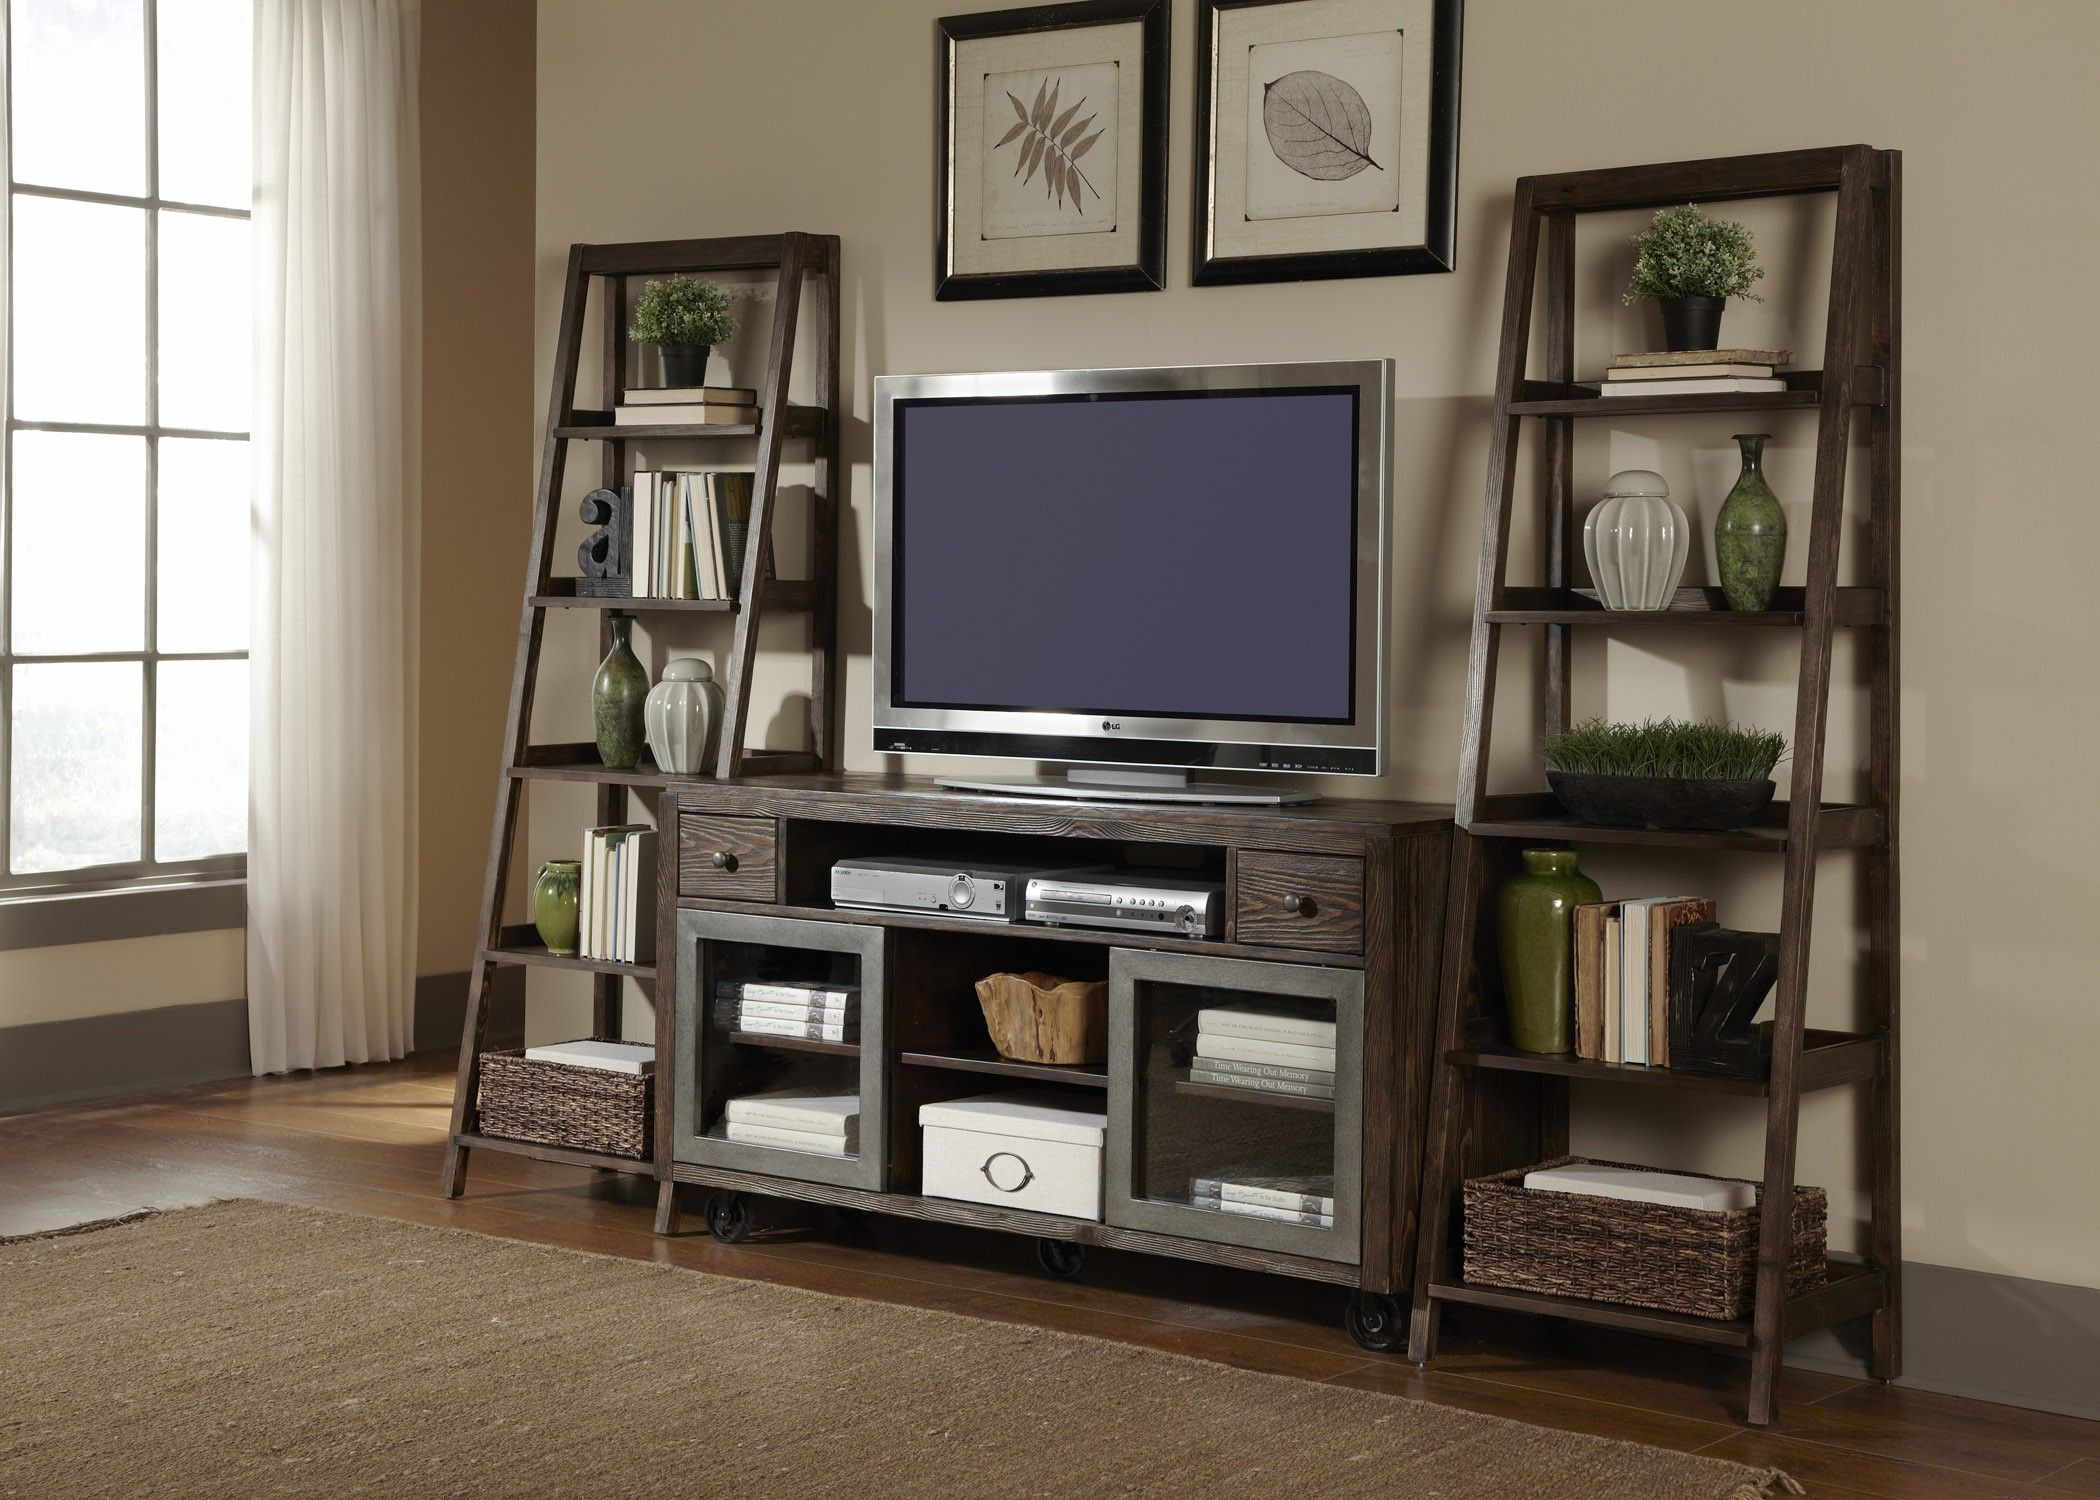 built room best plans wall entertainment l bookshelf center dining in living bookcase tv view larger bookcas